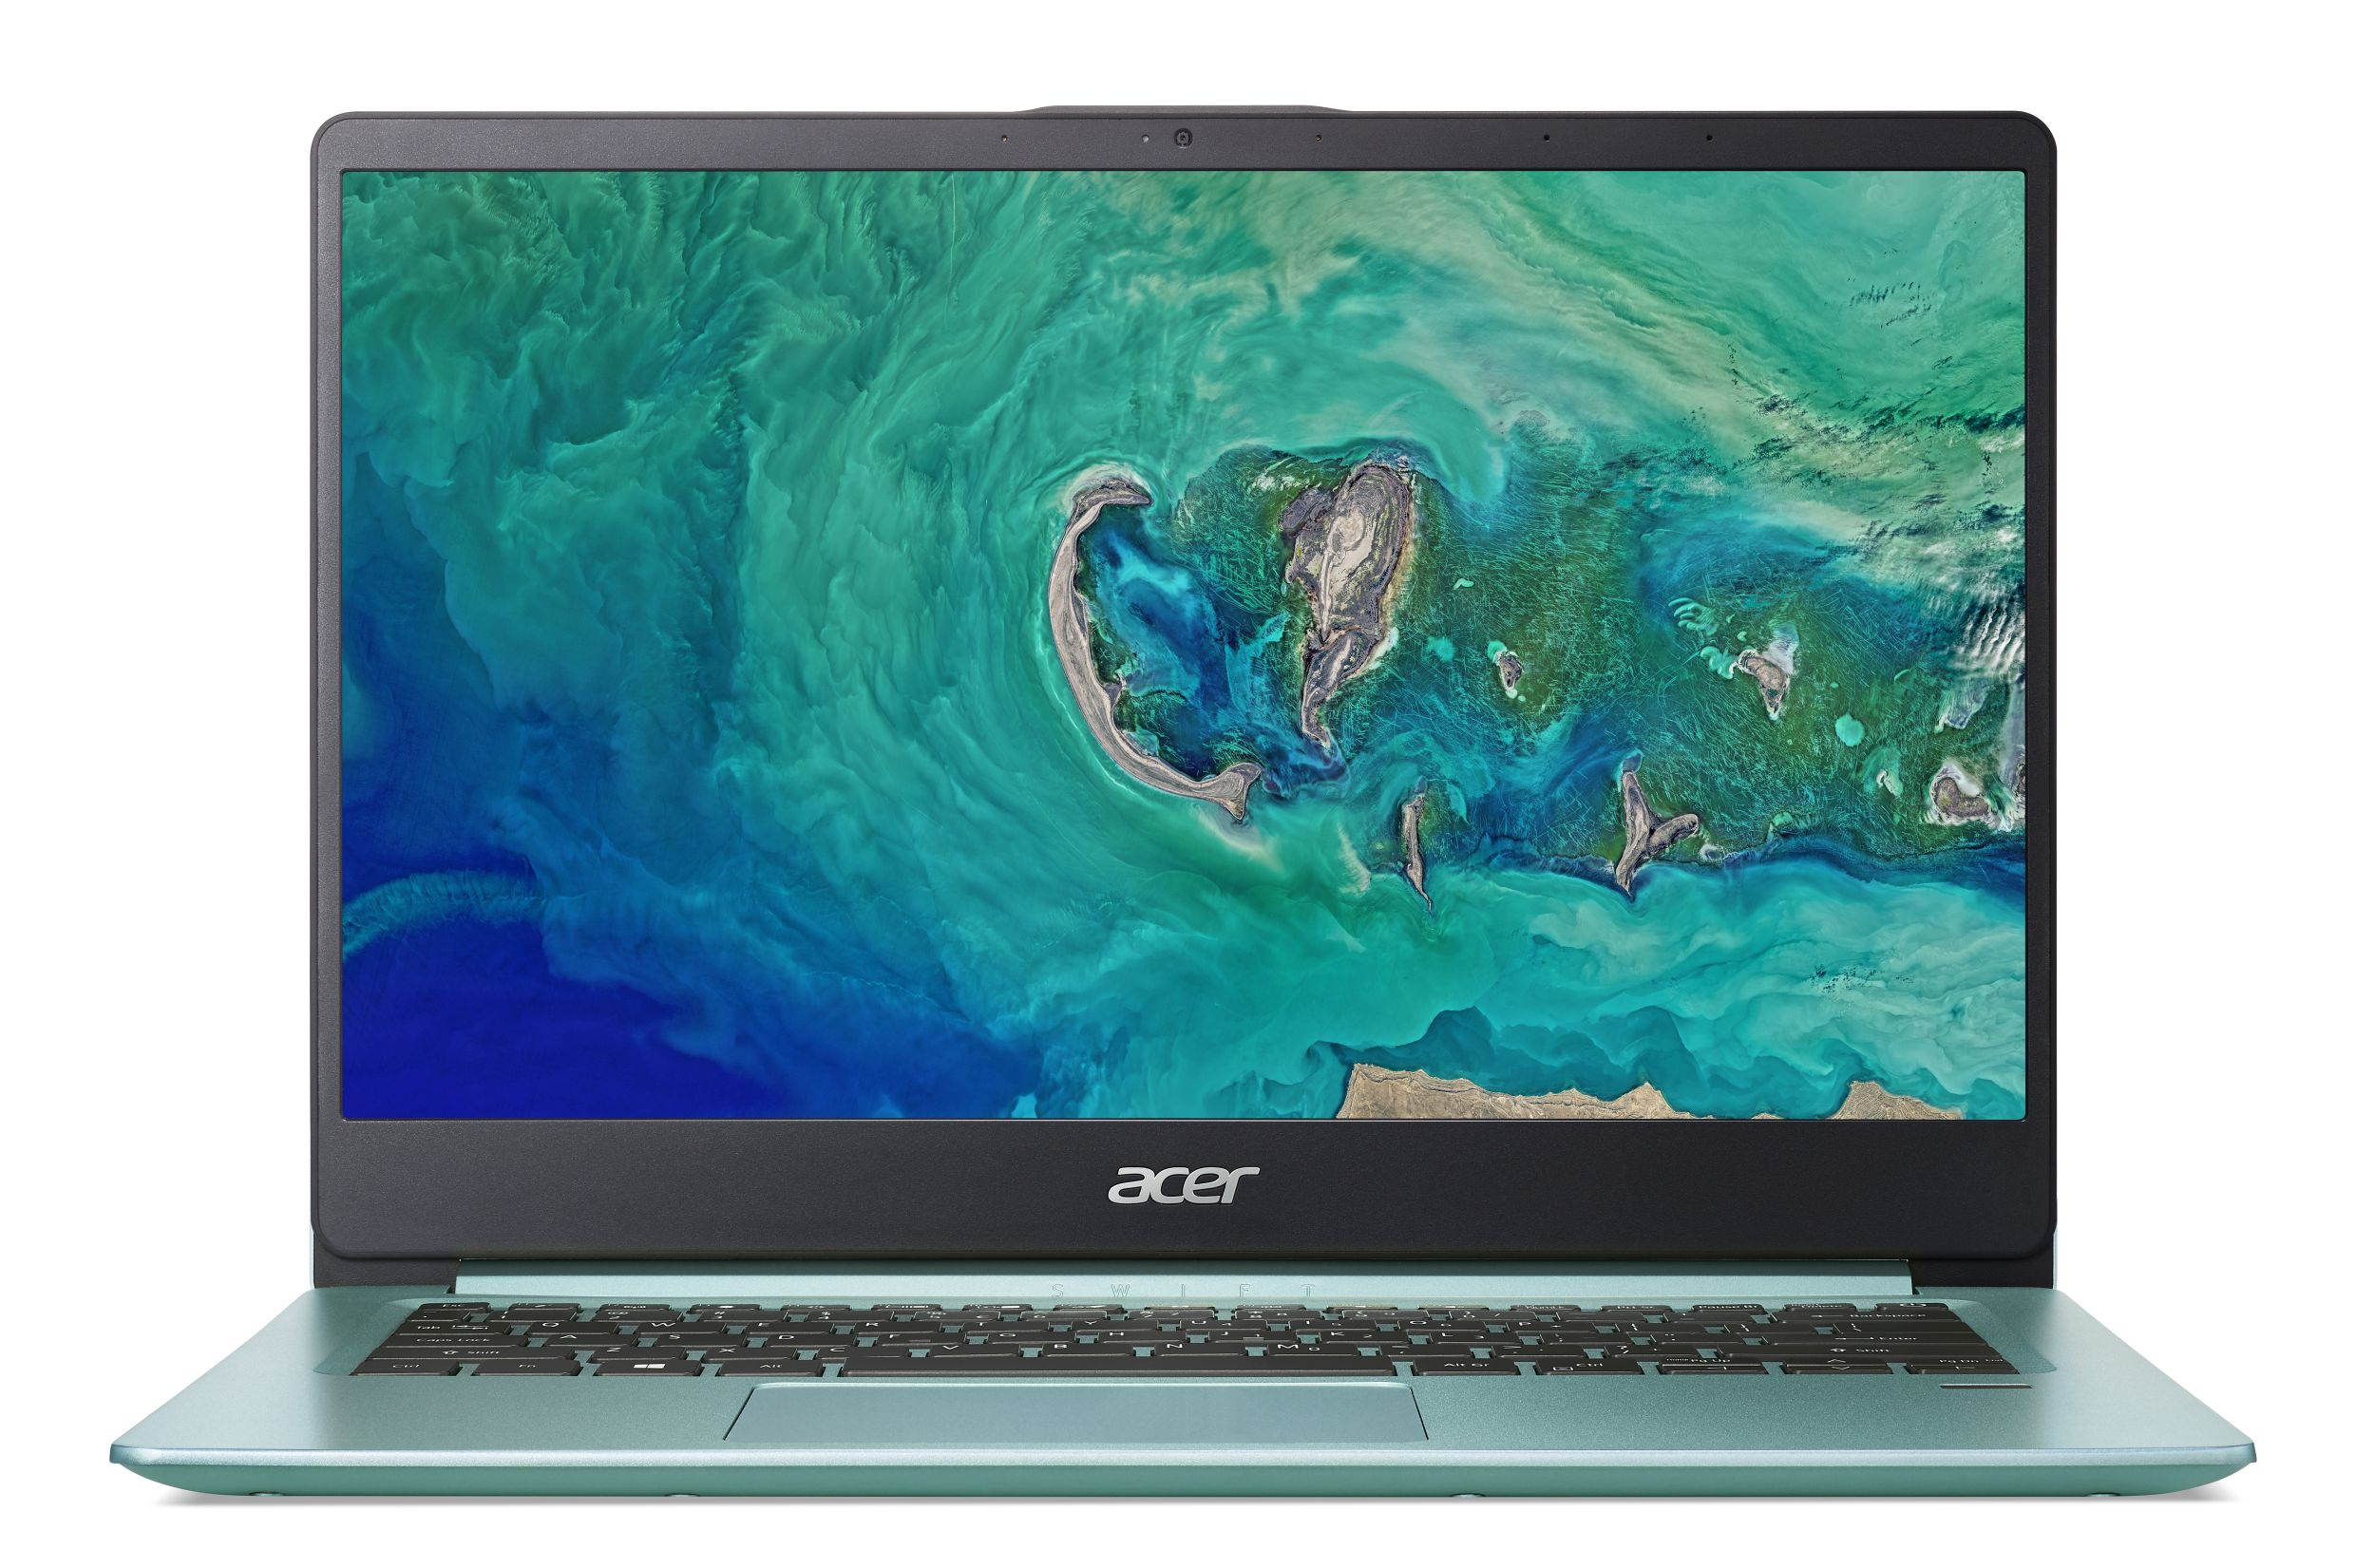 "Acer Swift 1(SF114-32-P94N) Pentium N5000/4GB+N/128GB SSD M.2+N/A/HD Graphics/14"" FHD matný/BT/W10 Home/Green"